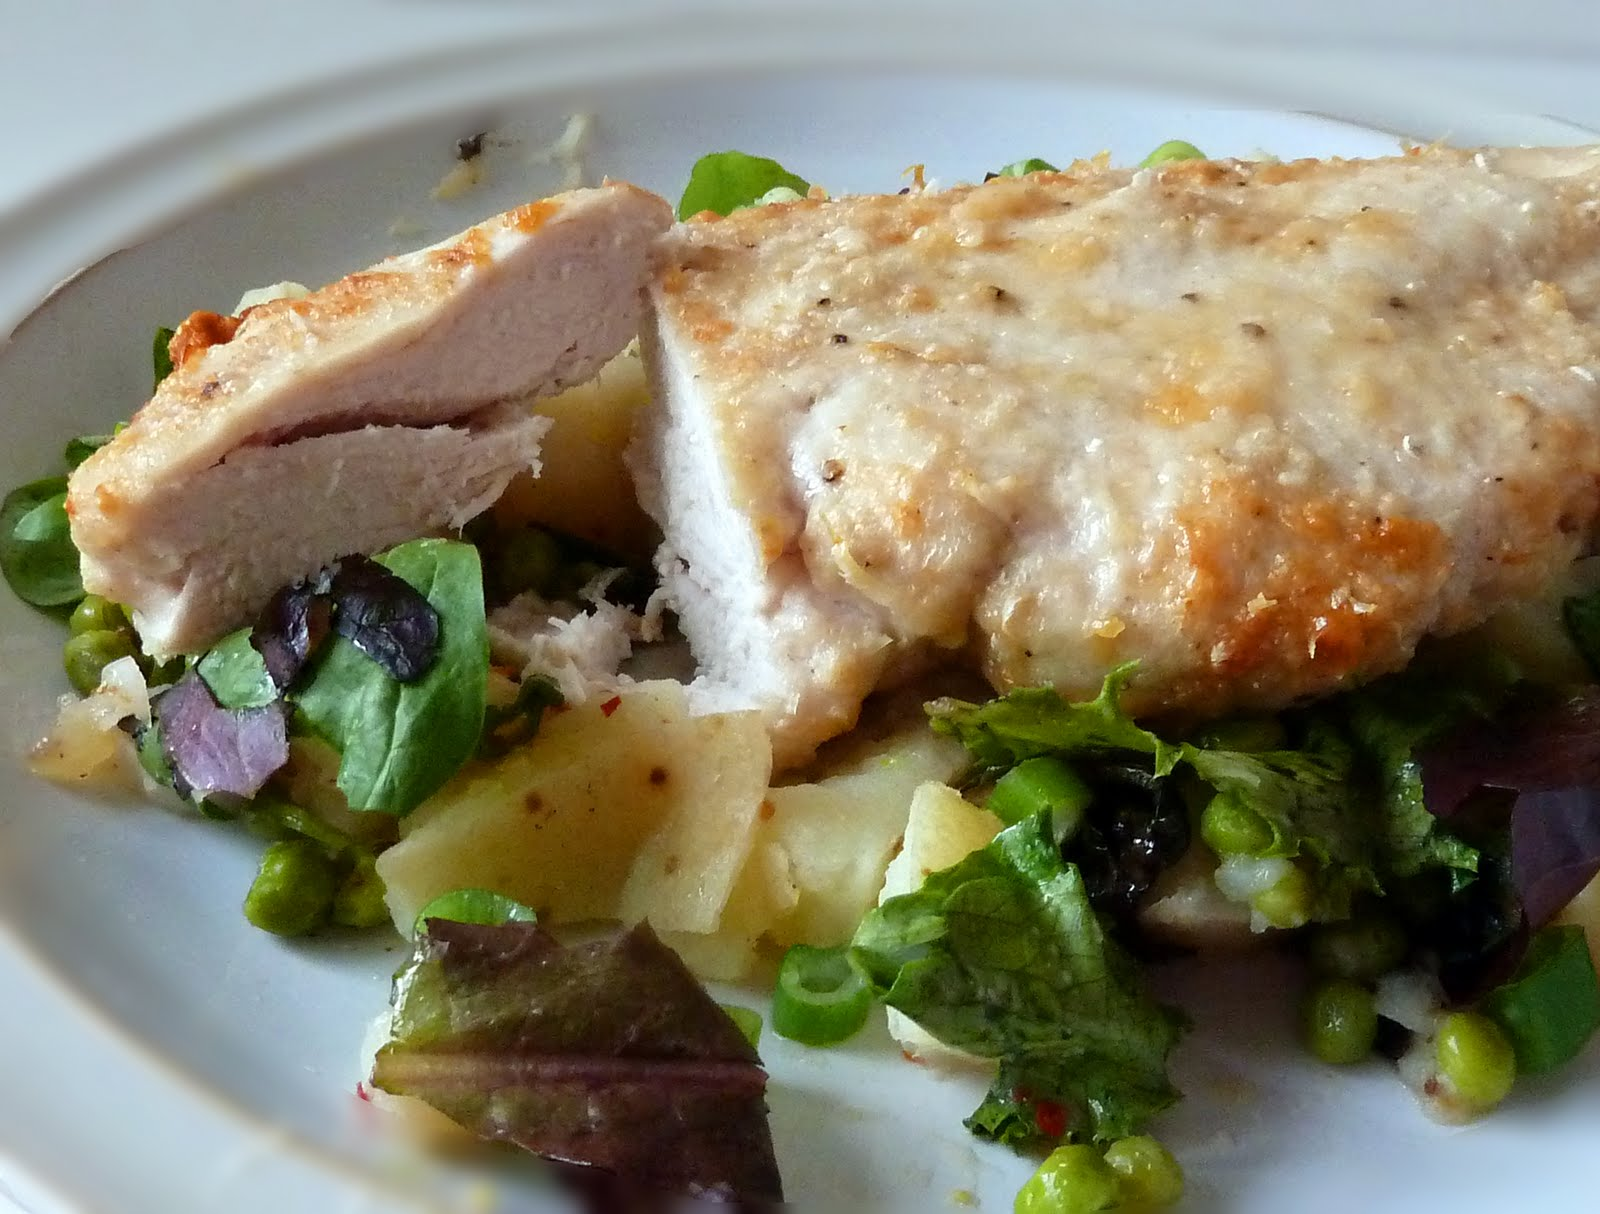 This is a really quick and very tasty meal. The chicken stays superbly ...